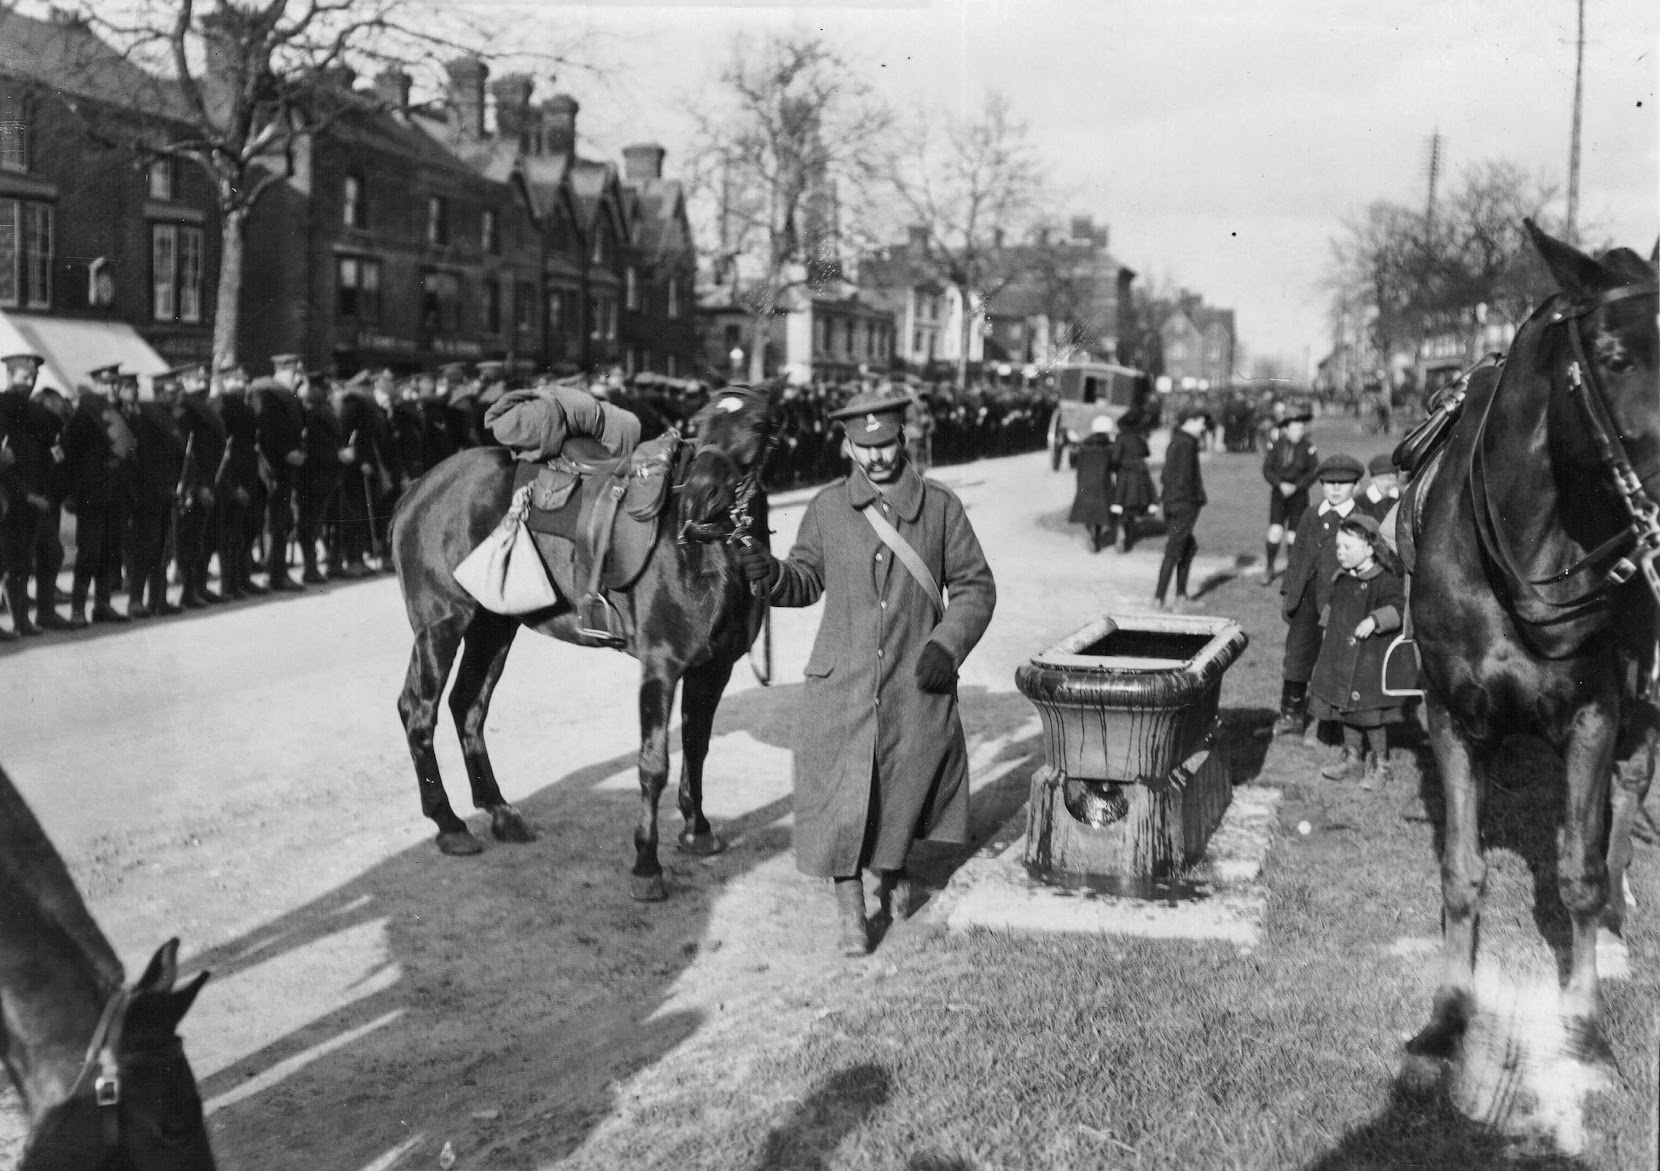 The Buffs 5th Batt in 1914 and the water trough in Tenterden High Street